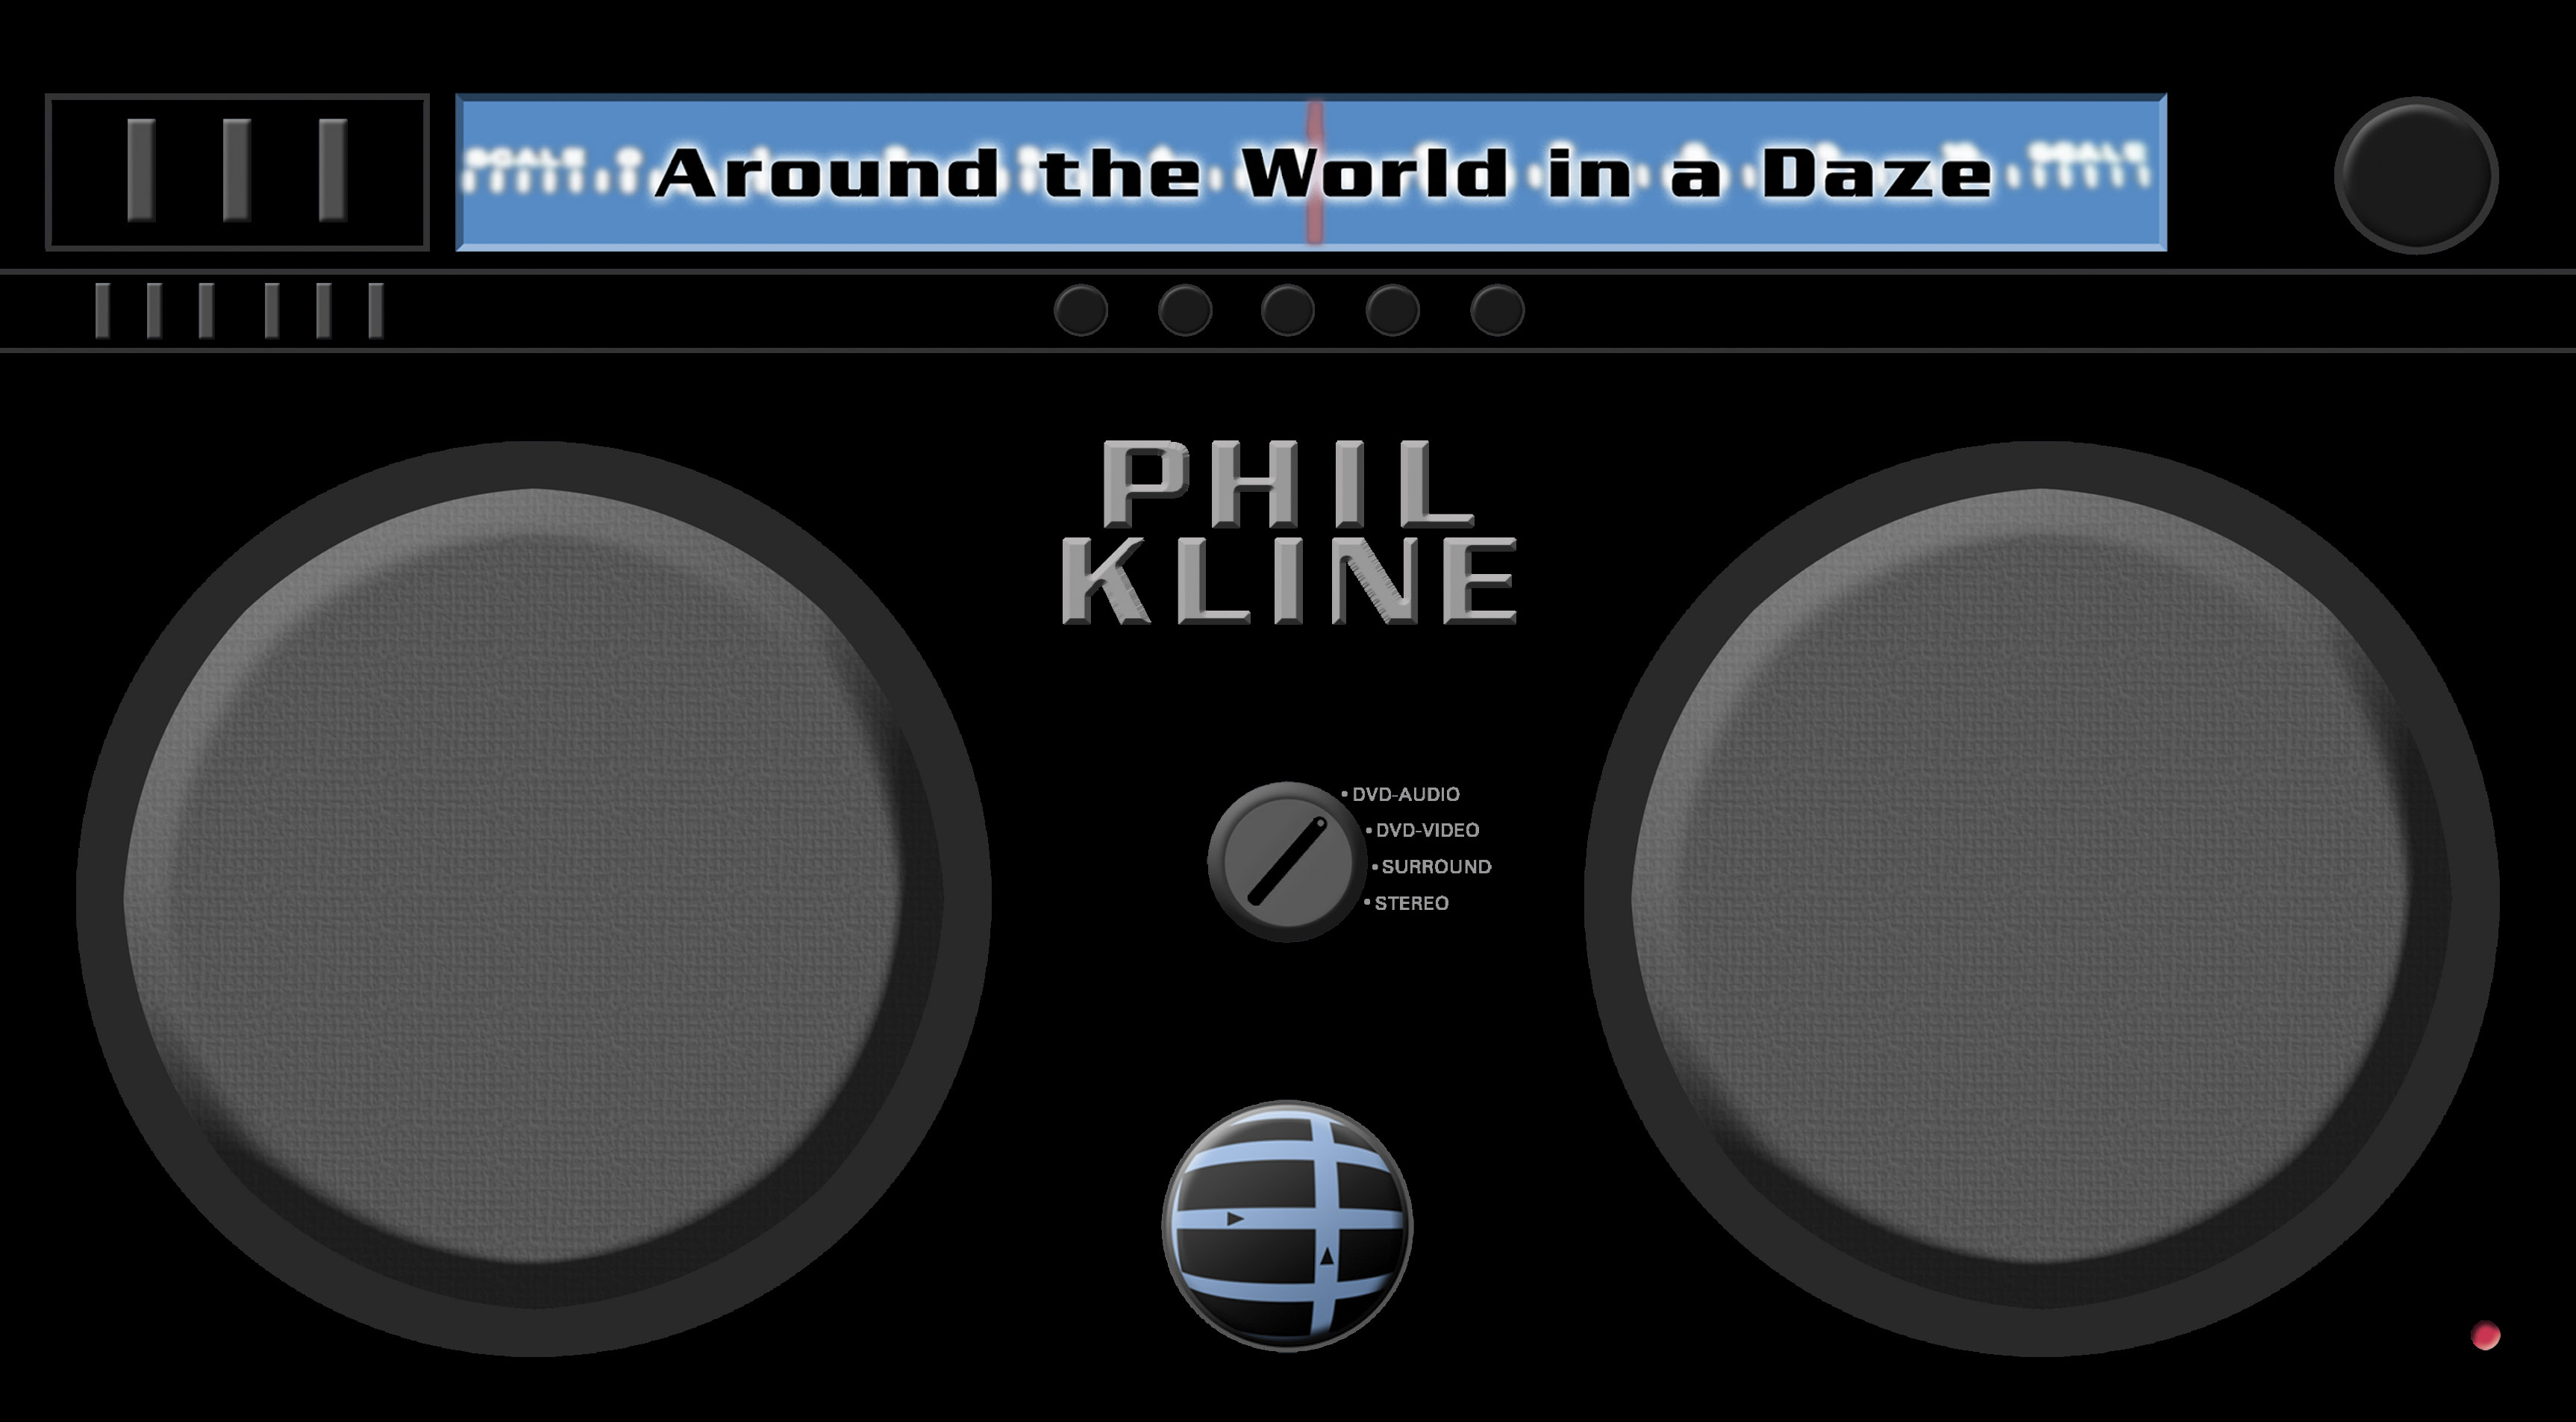 The oversized cover for Phil Kline's Around the World in a Daze which looks like a boombox.